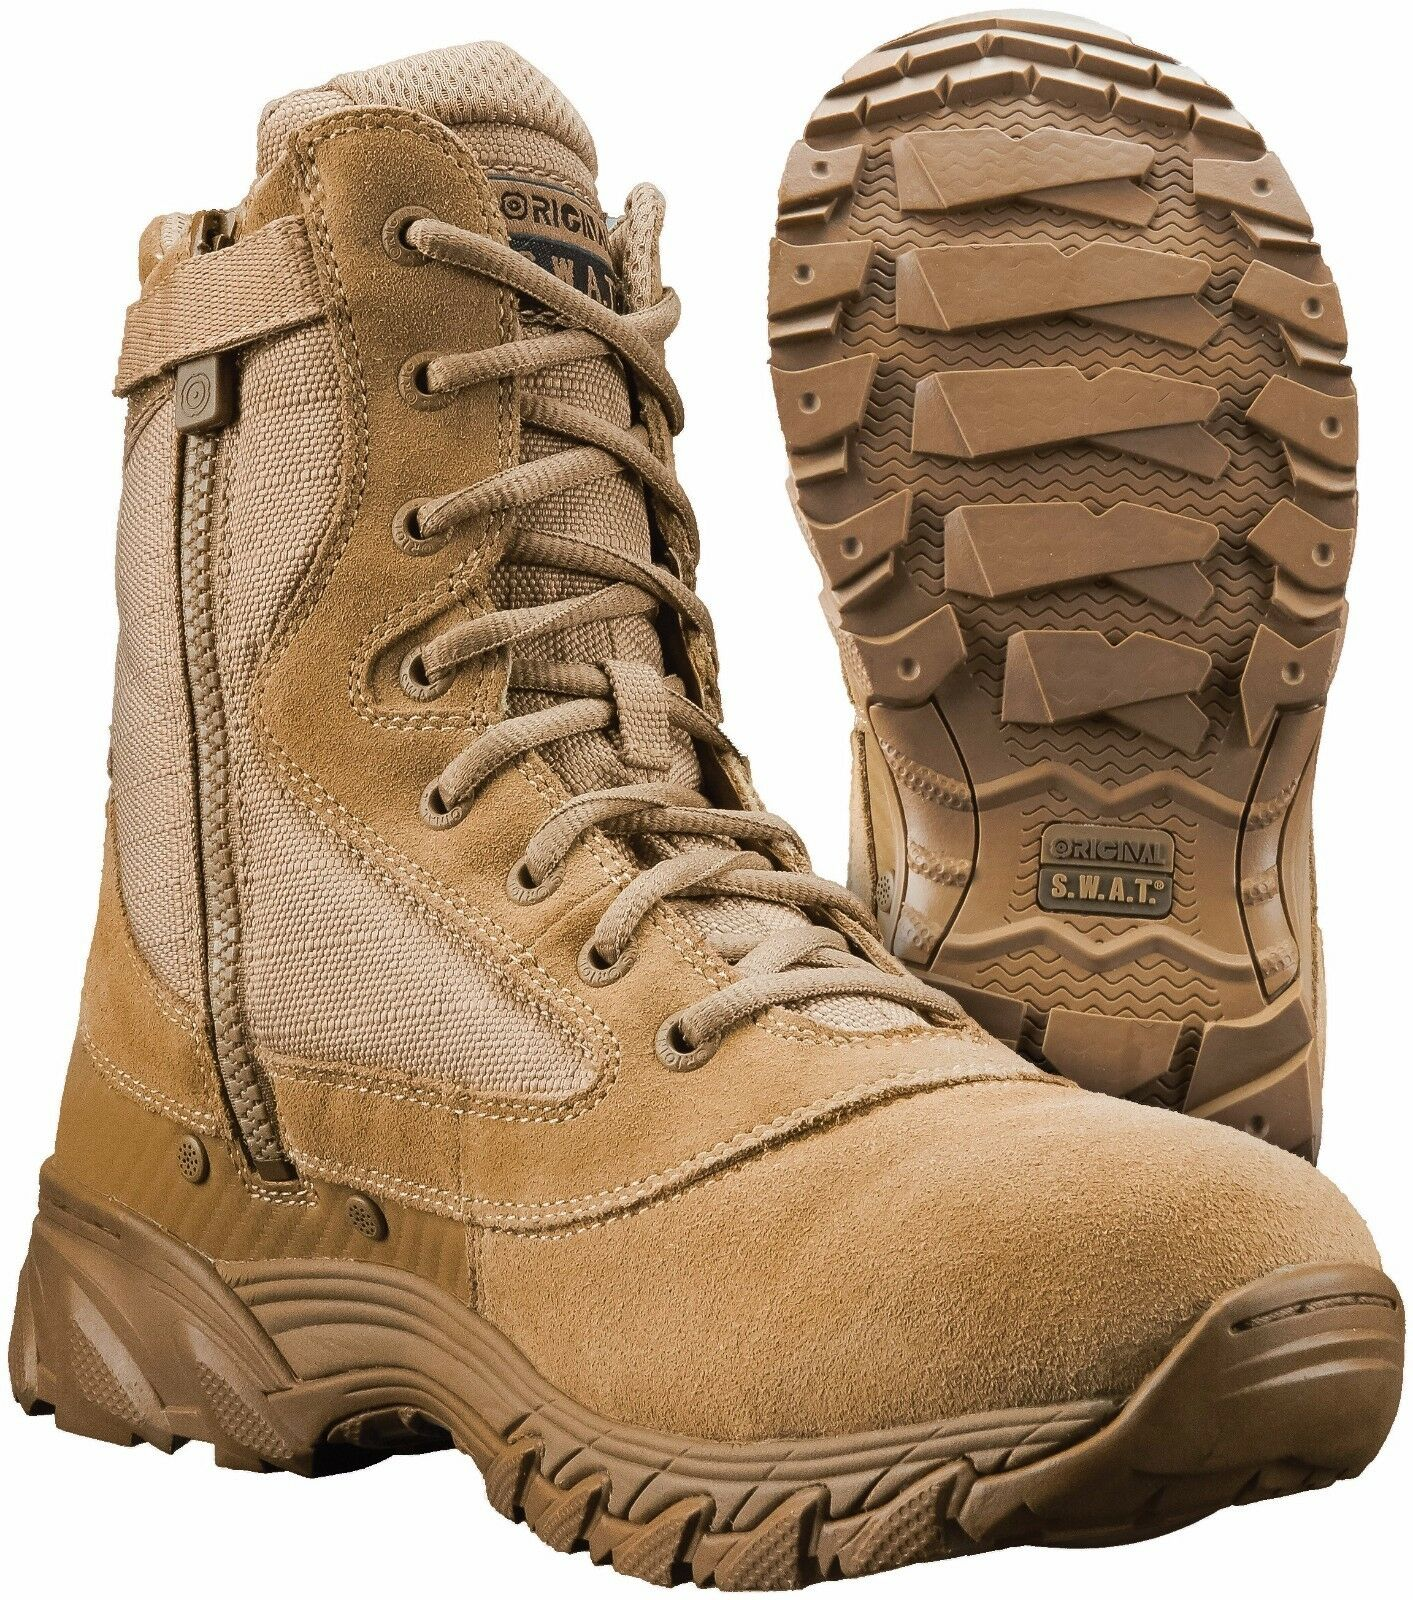 ORIGINAL SWAT CHASE 9 inch Side  Zip Tactical Boot Tan  save 60% discount and fast shipping worldwide